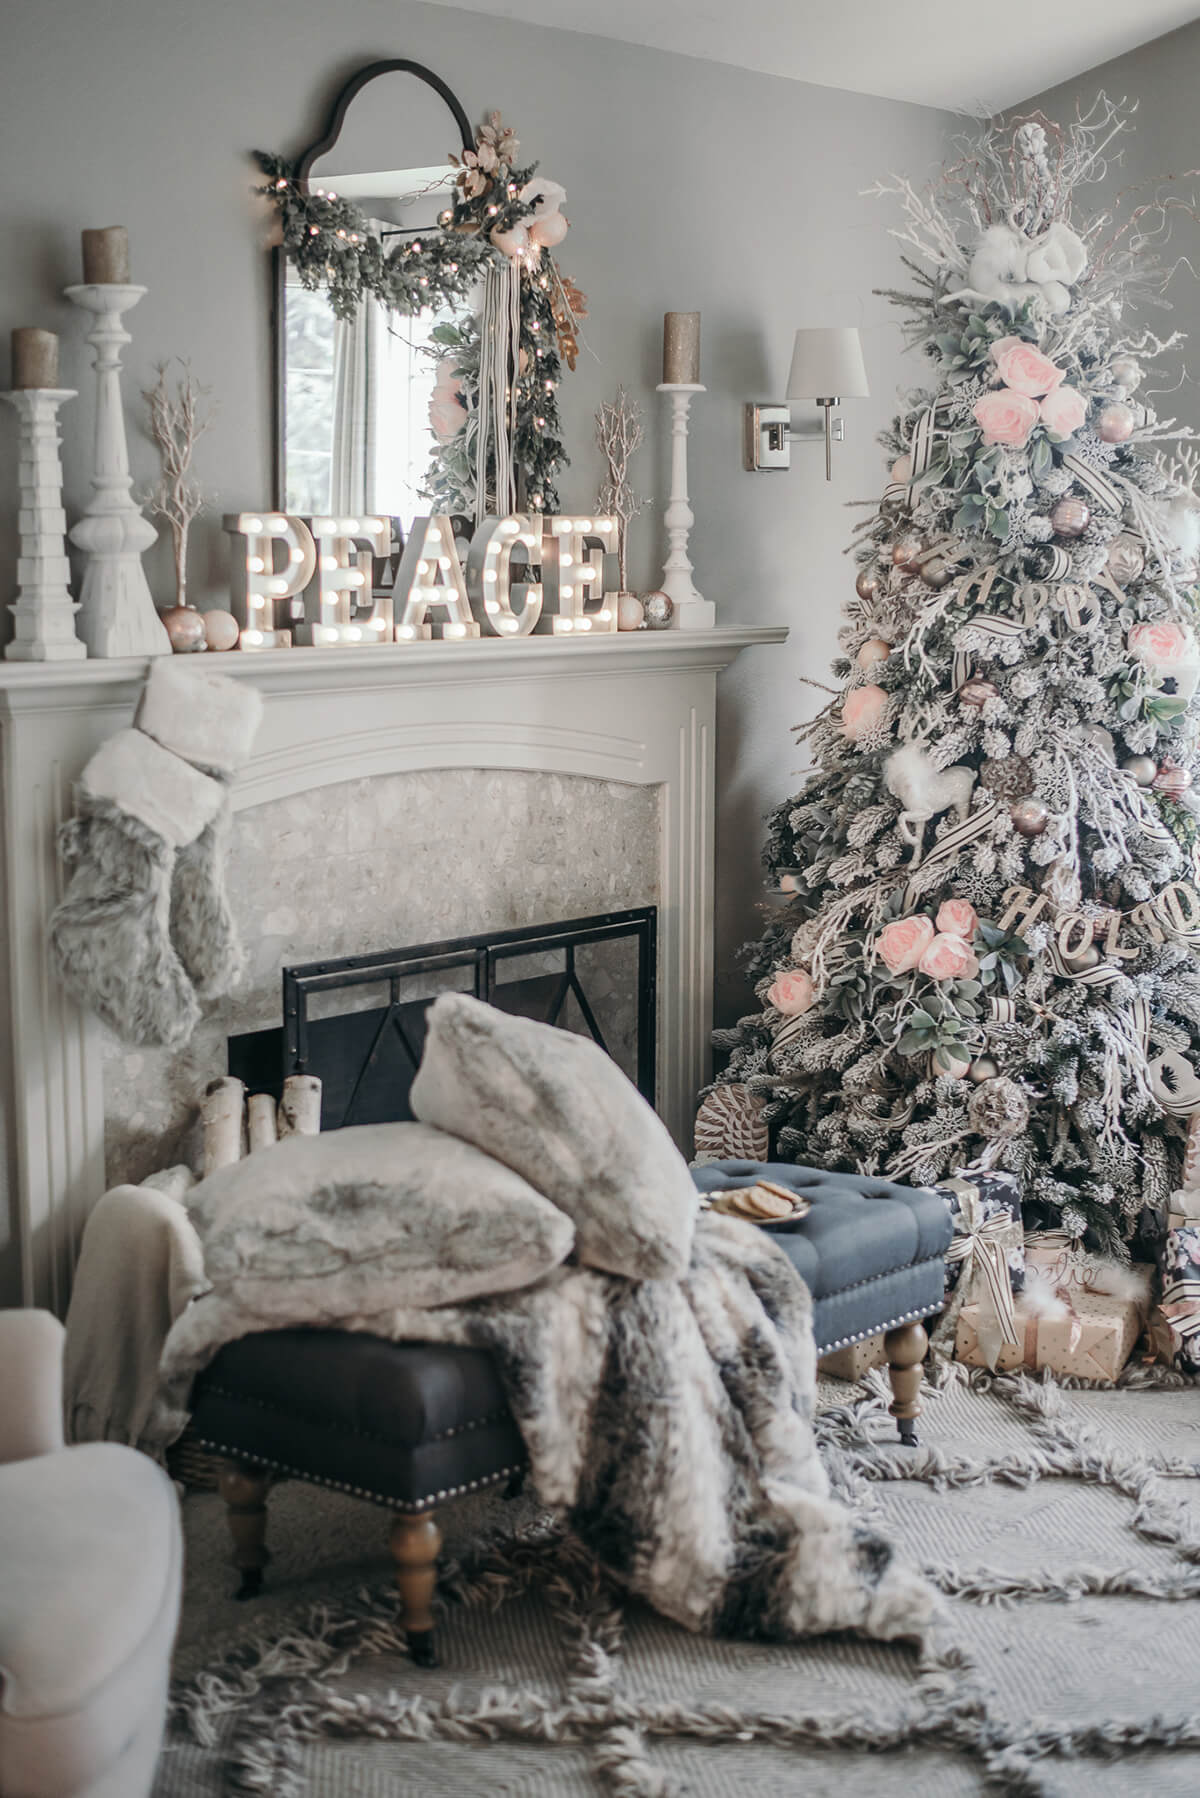 decorate small living room for christmas furniture ideas 2016 32 best decor and designs 2019 peace in furry white